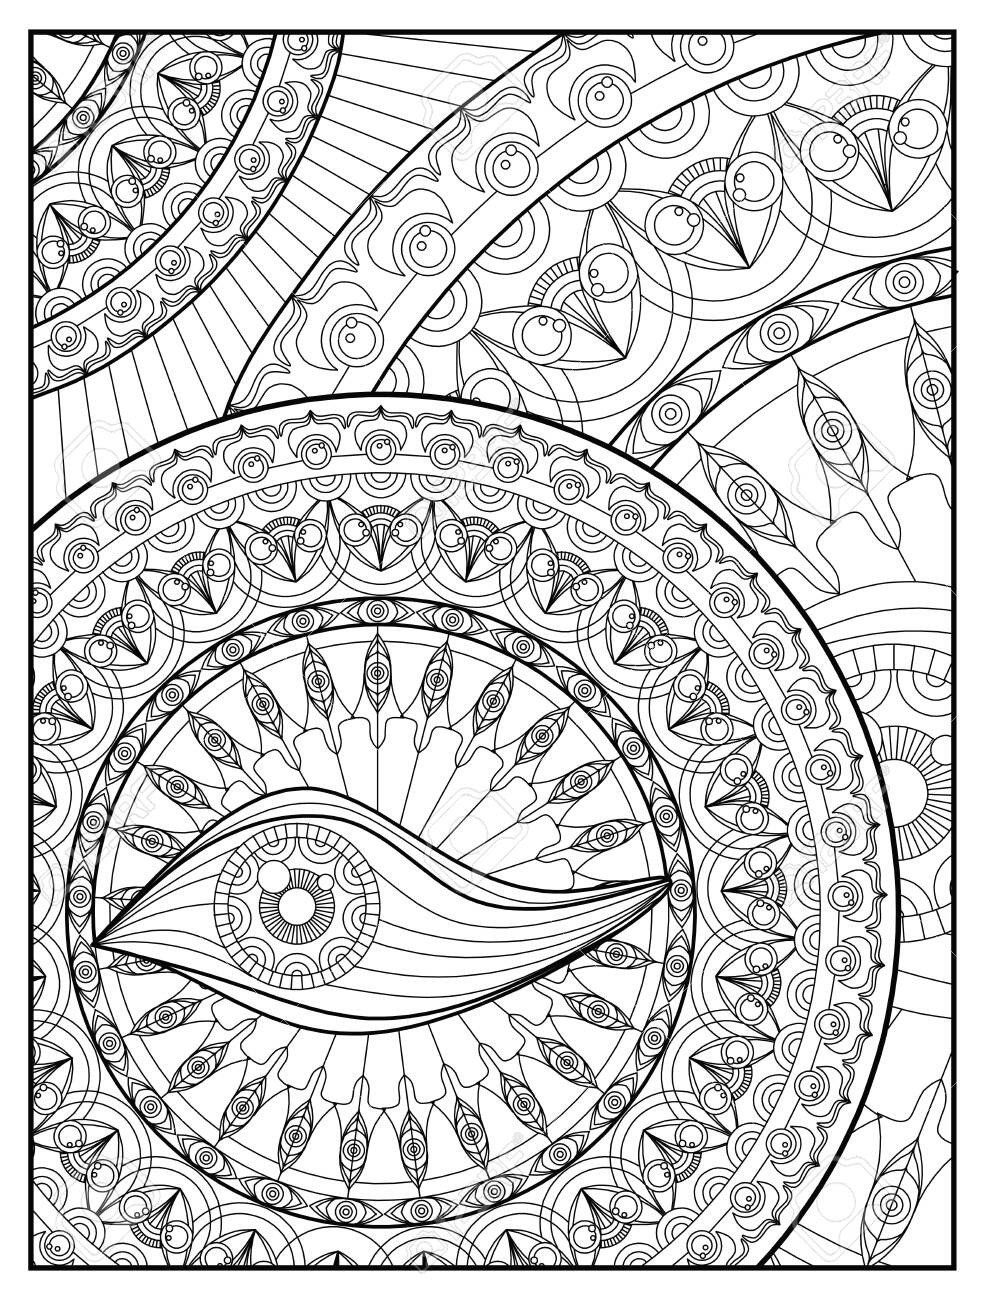 Big Mandala Coloring Pages Coloring Books Mandala Coloring Book For Adults Mandala Coloring Pages Bird Coloring Pages Butterfly Coloring Page